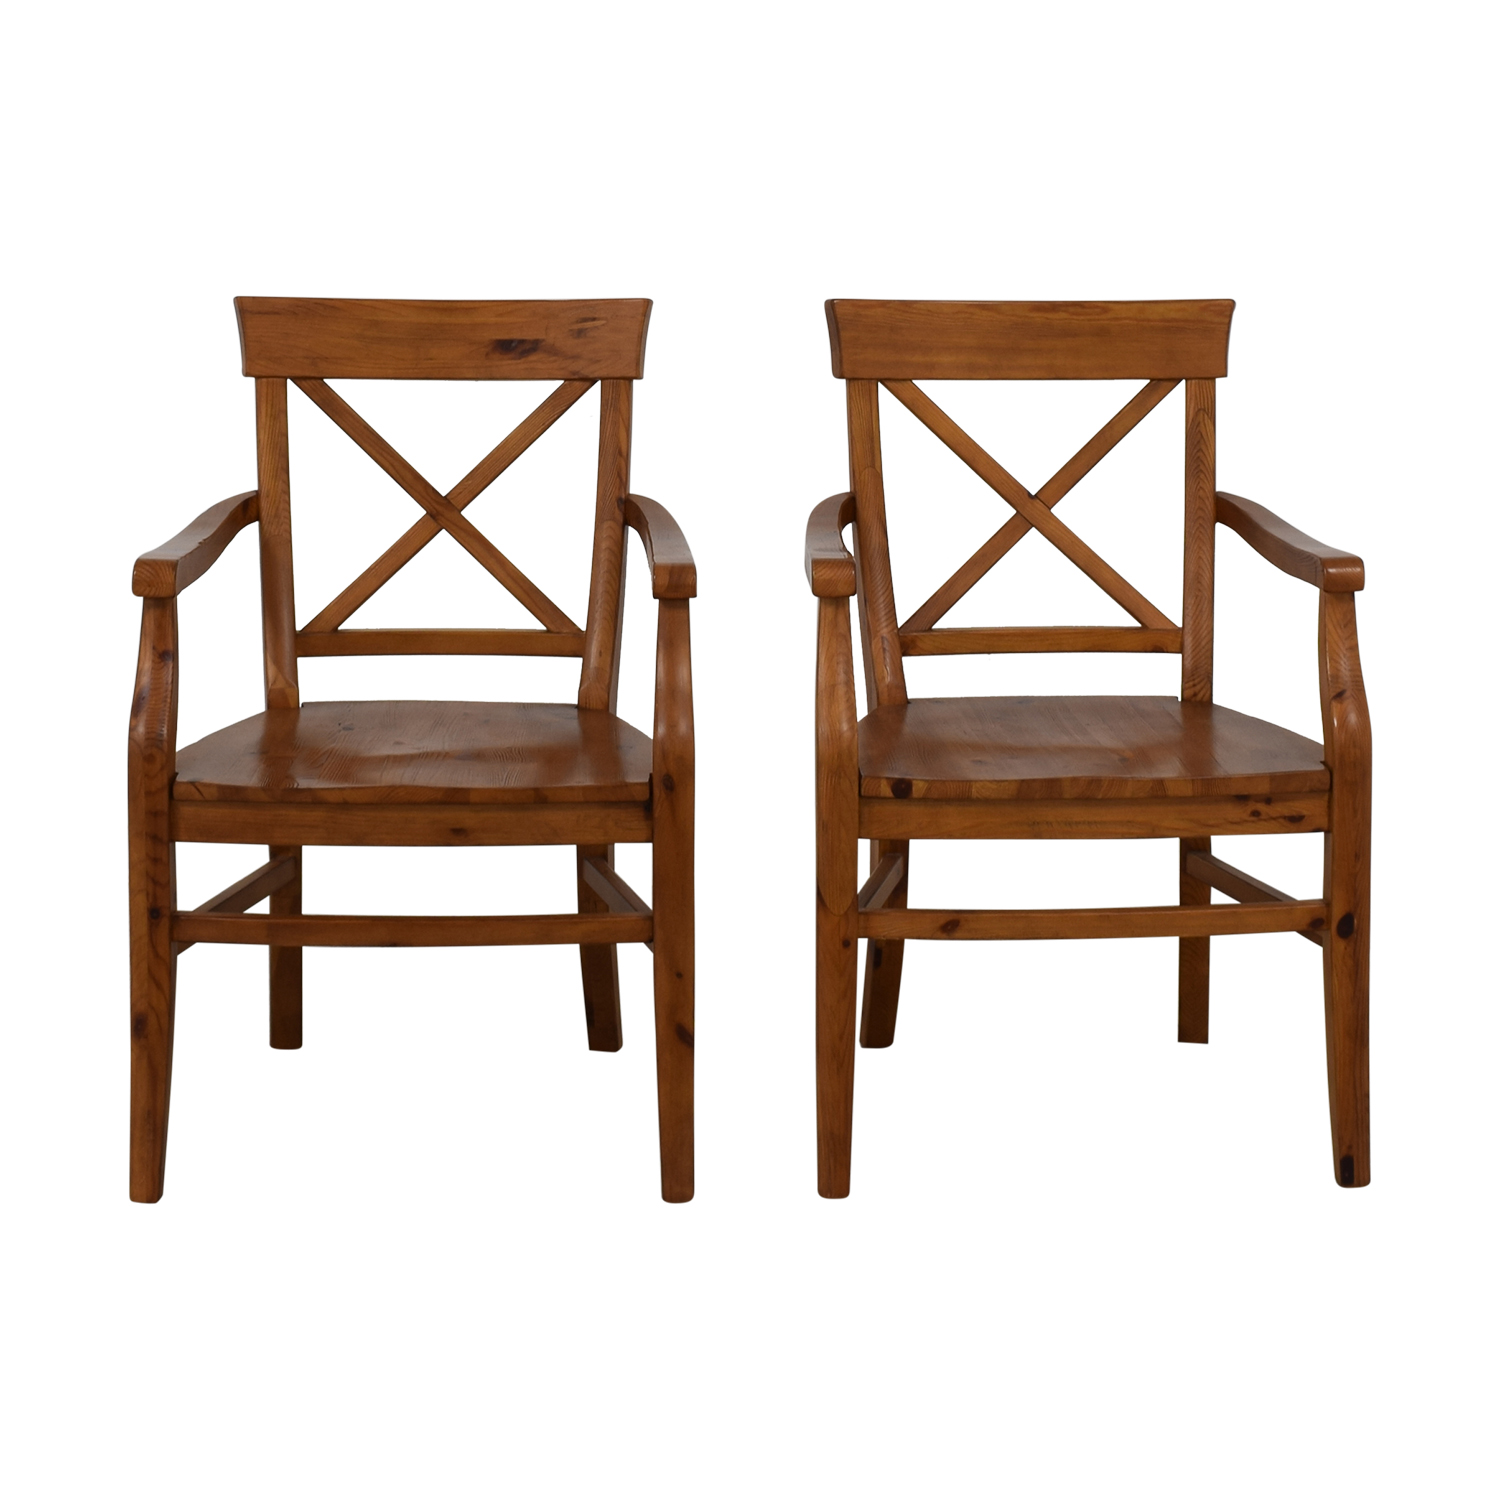 Crate & Barrel Crate & Barrel Armchairs second hand